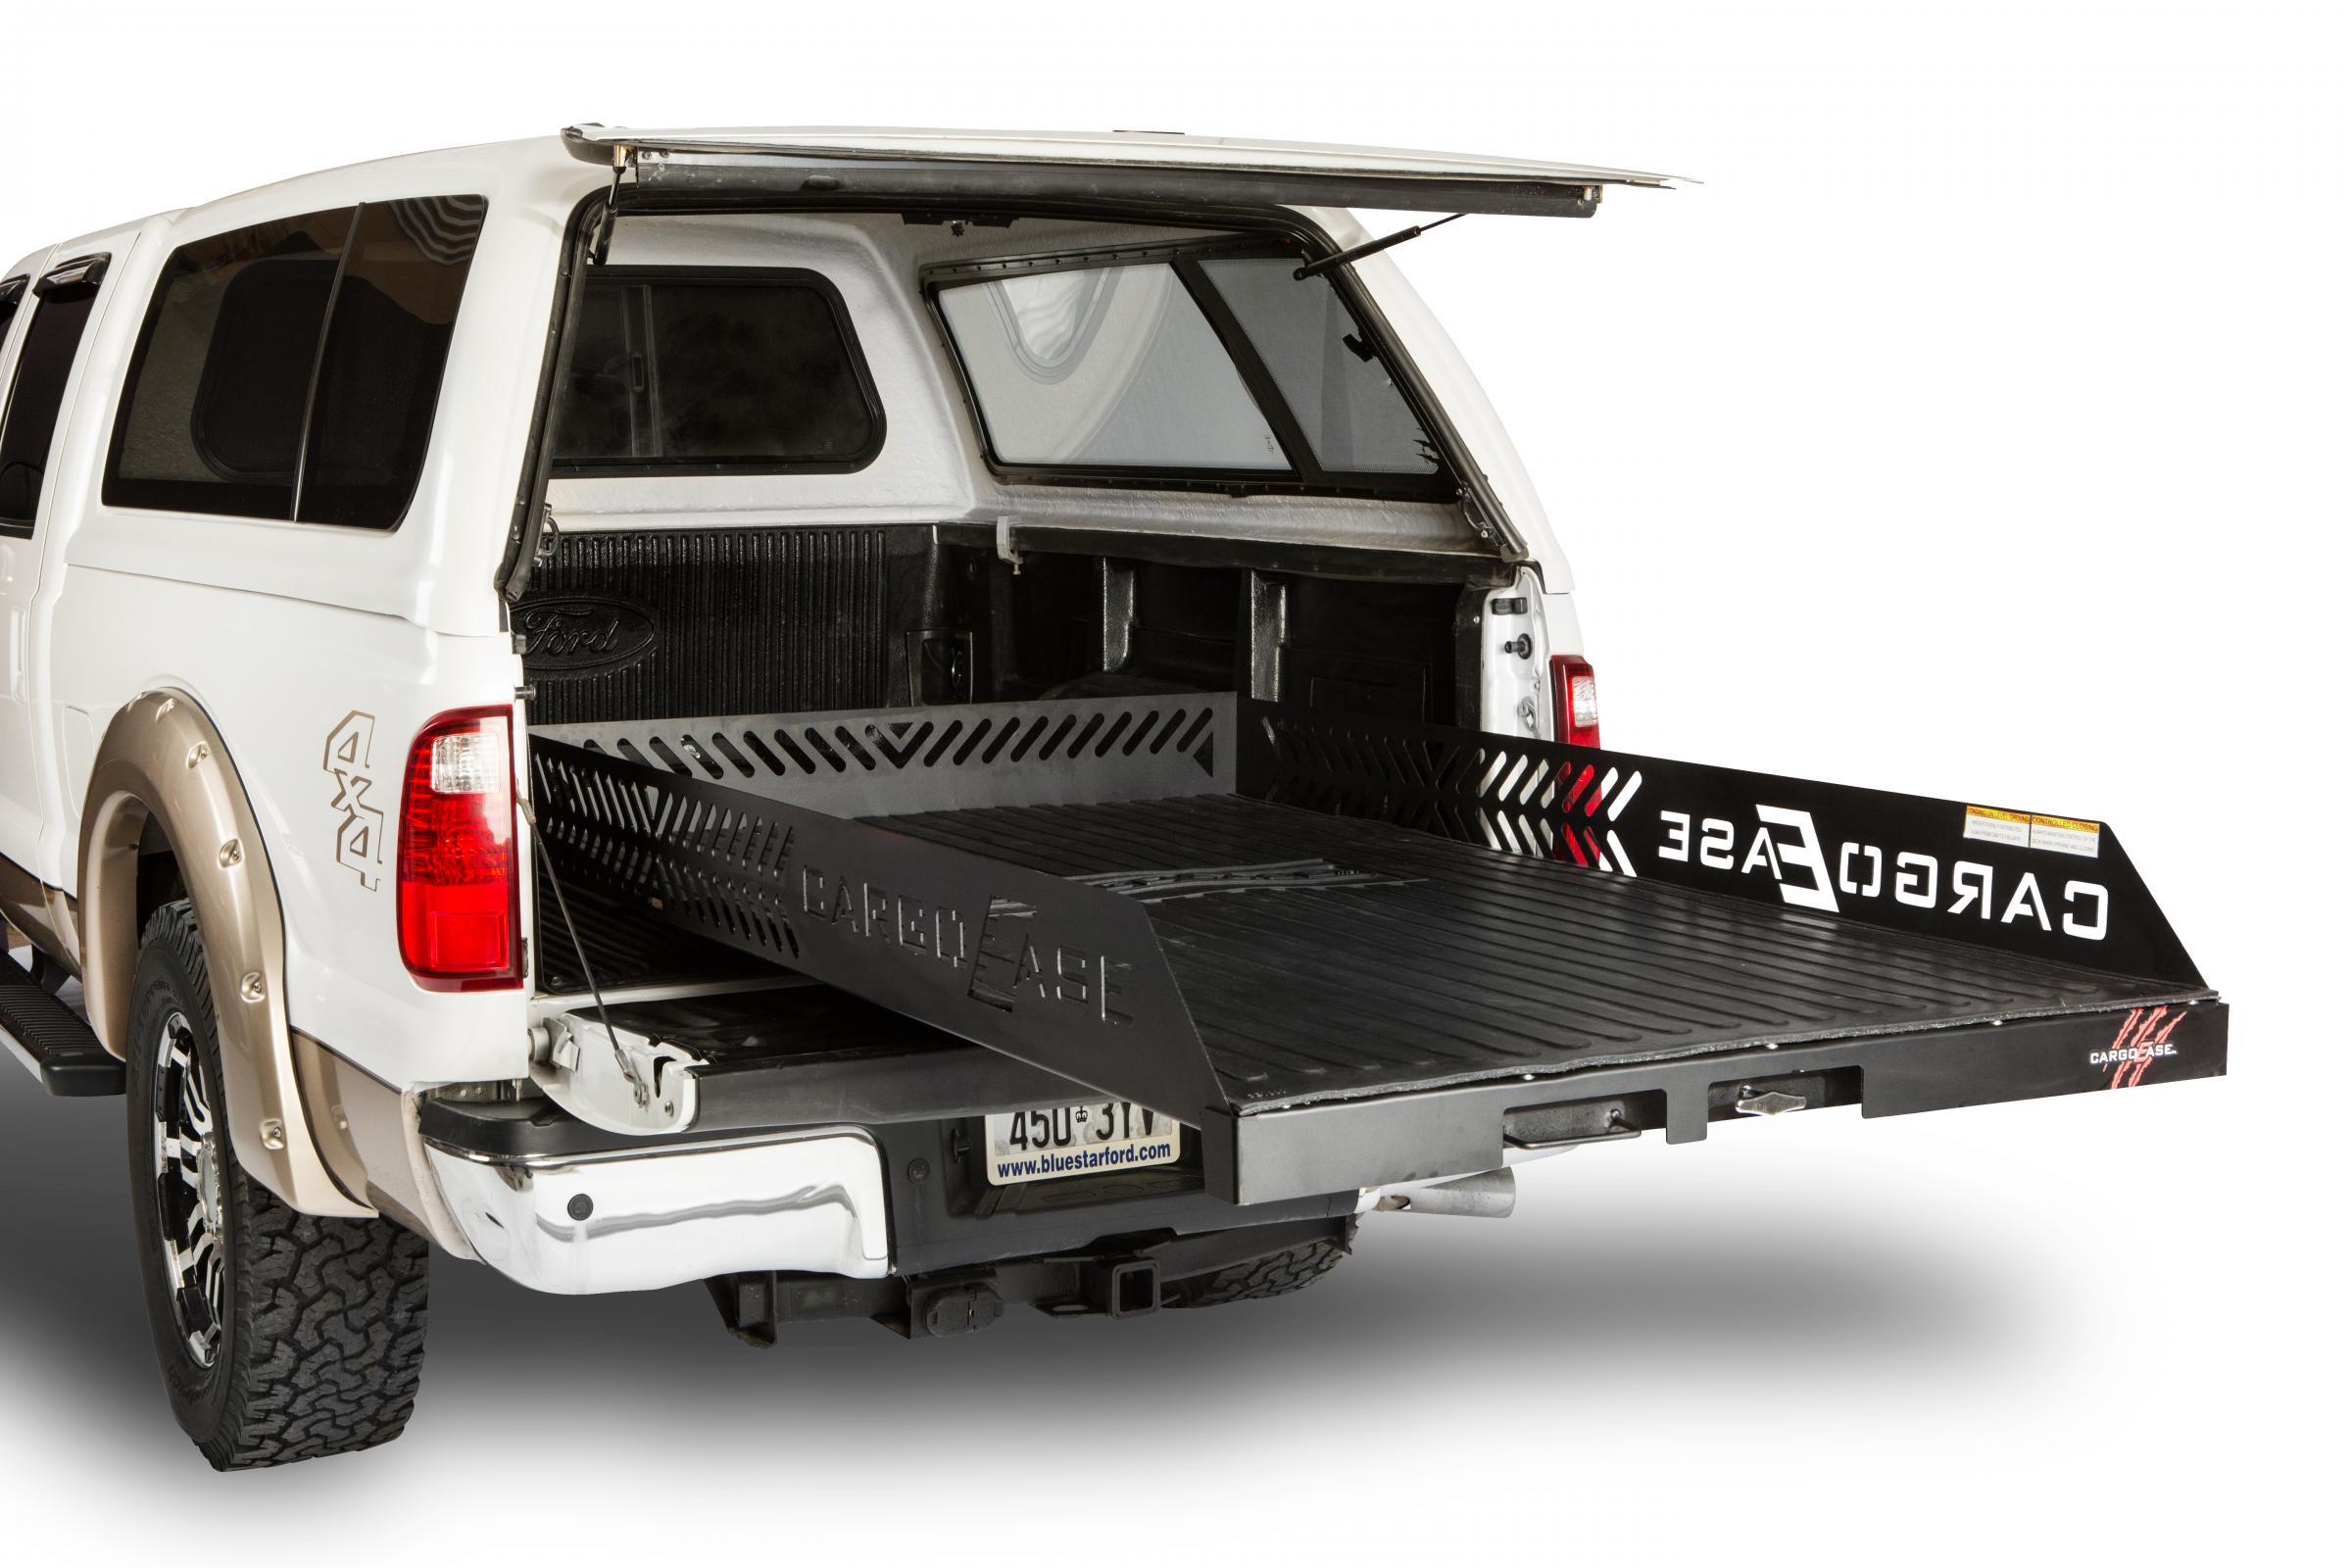 CE7548C20 Cargo Ease Bed Slide 2000 Pound Capacity